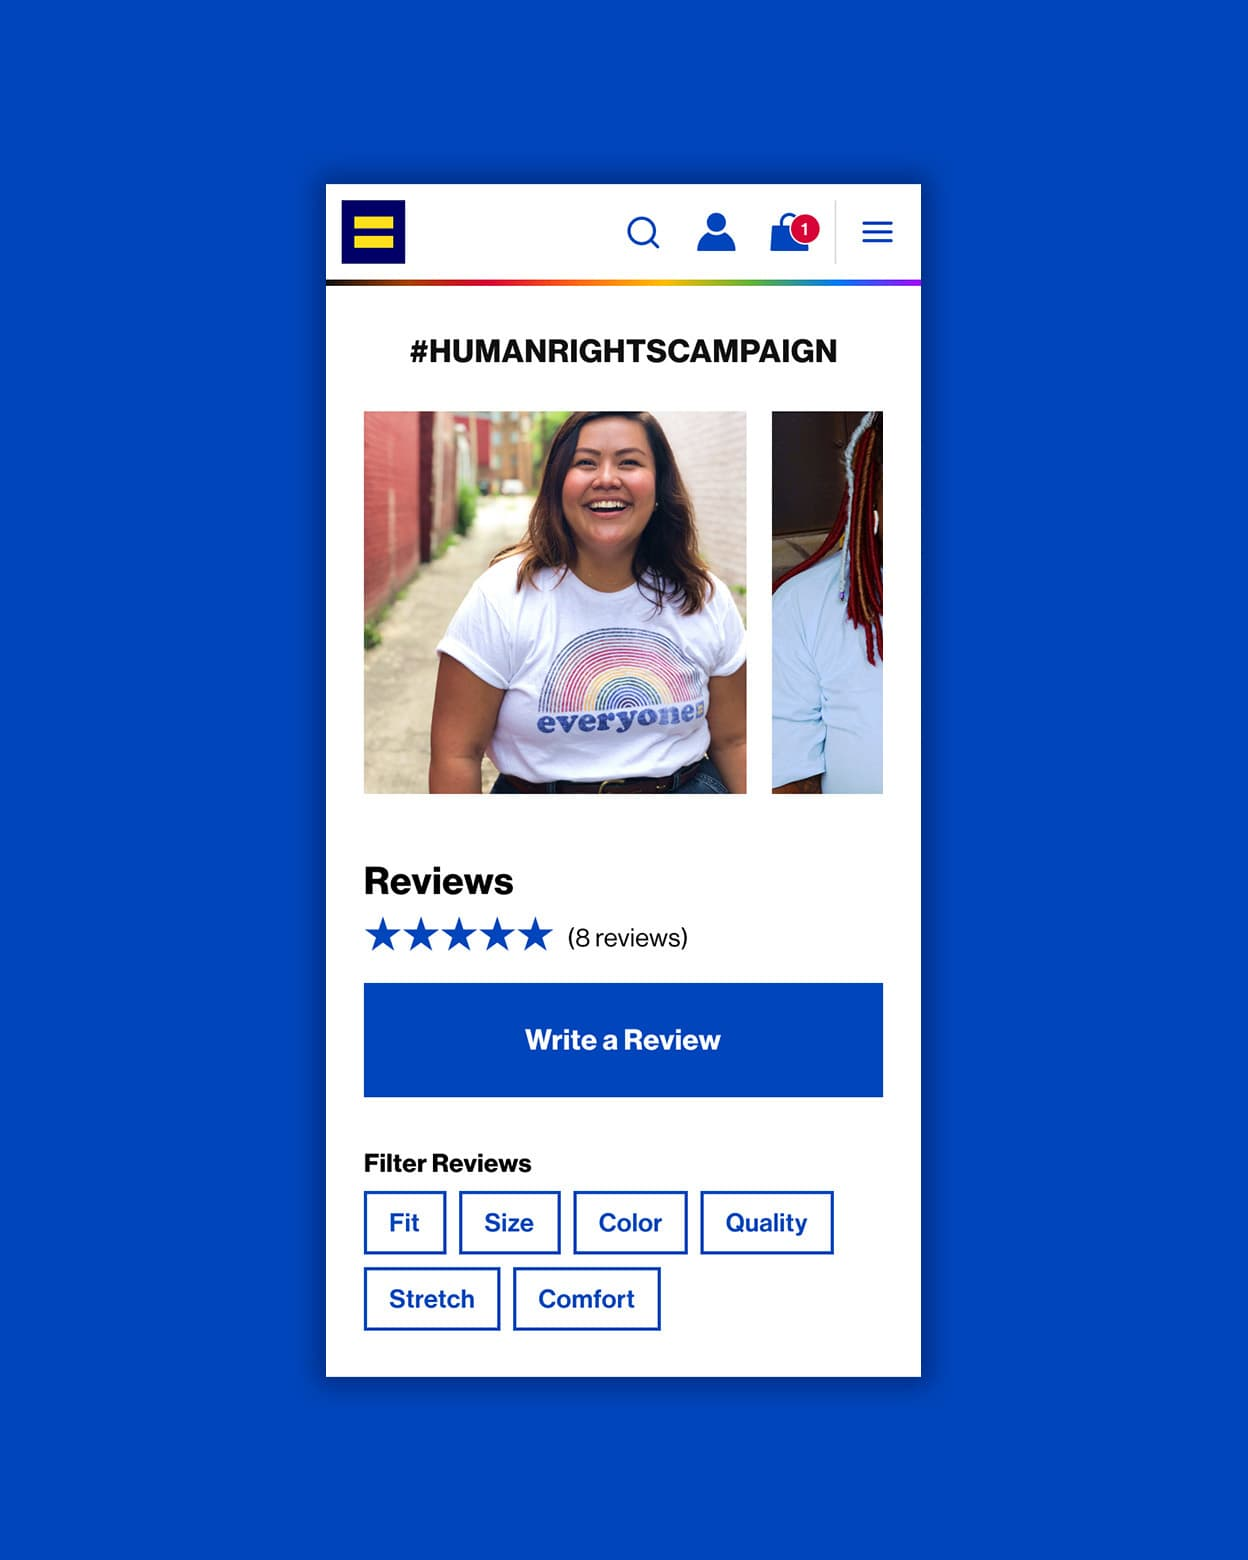 The mobile product page for the Human Rights Campaign's ecommerce store.